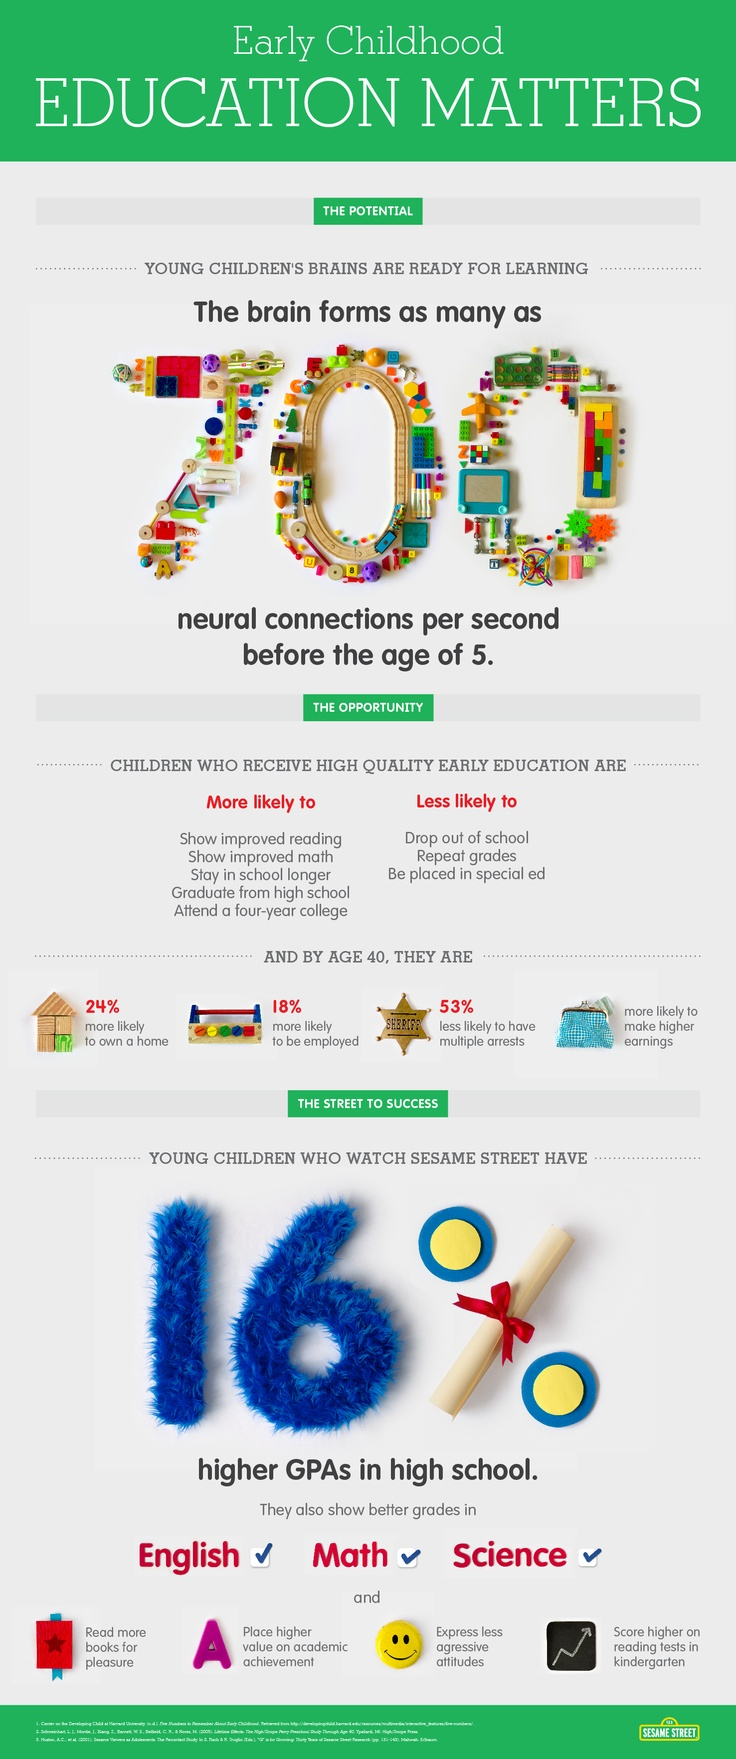 17 Best images about Early Childhood Education on Pinterest ...